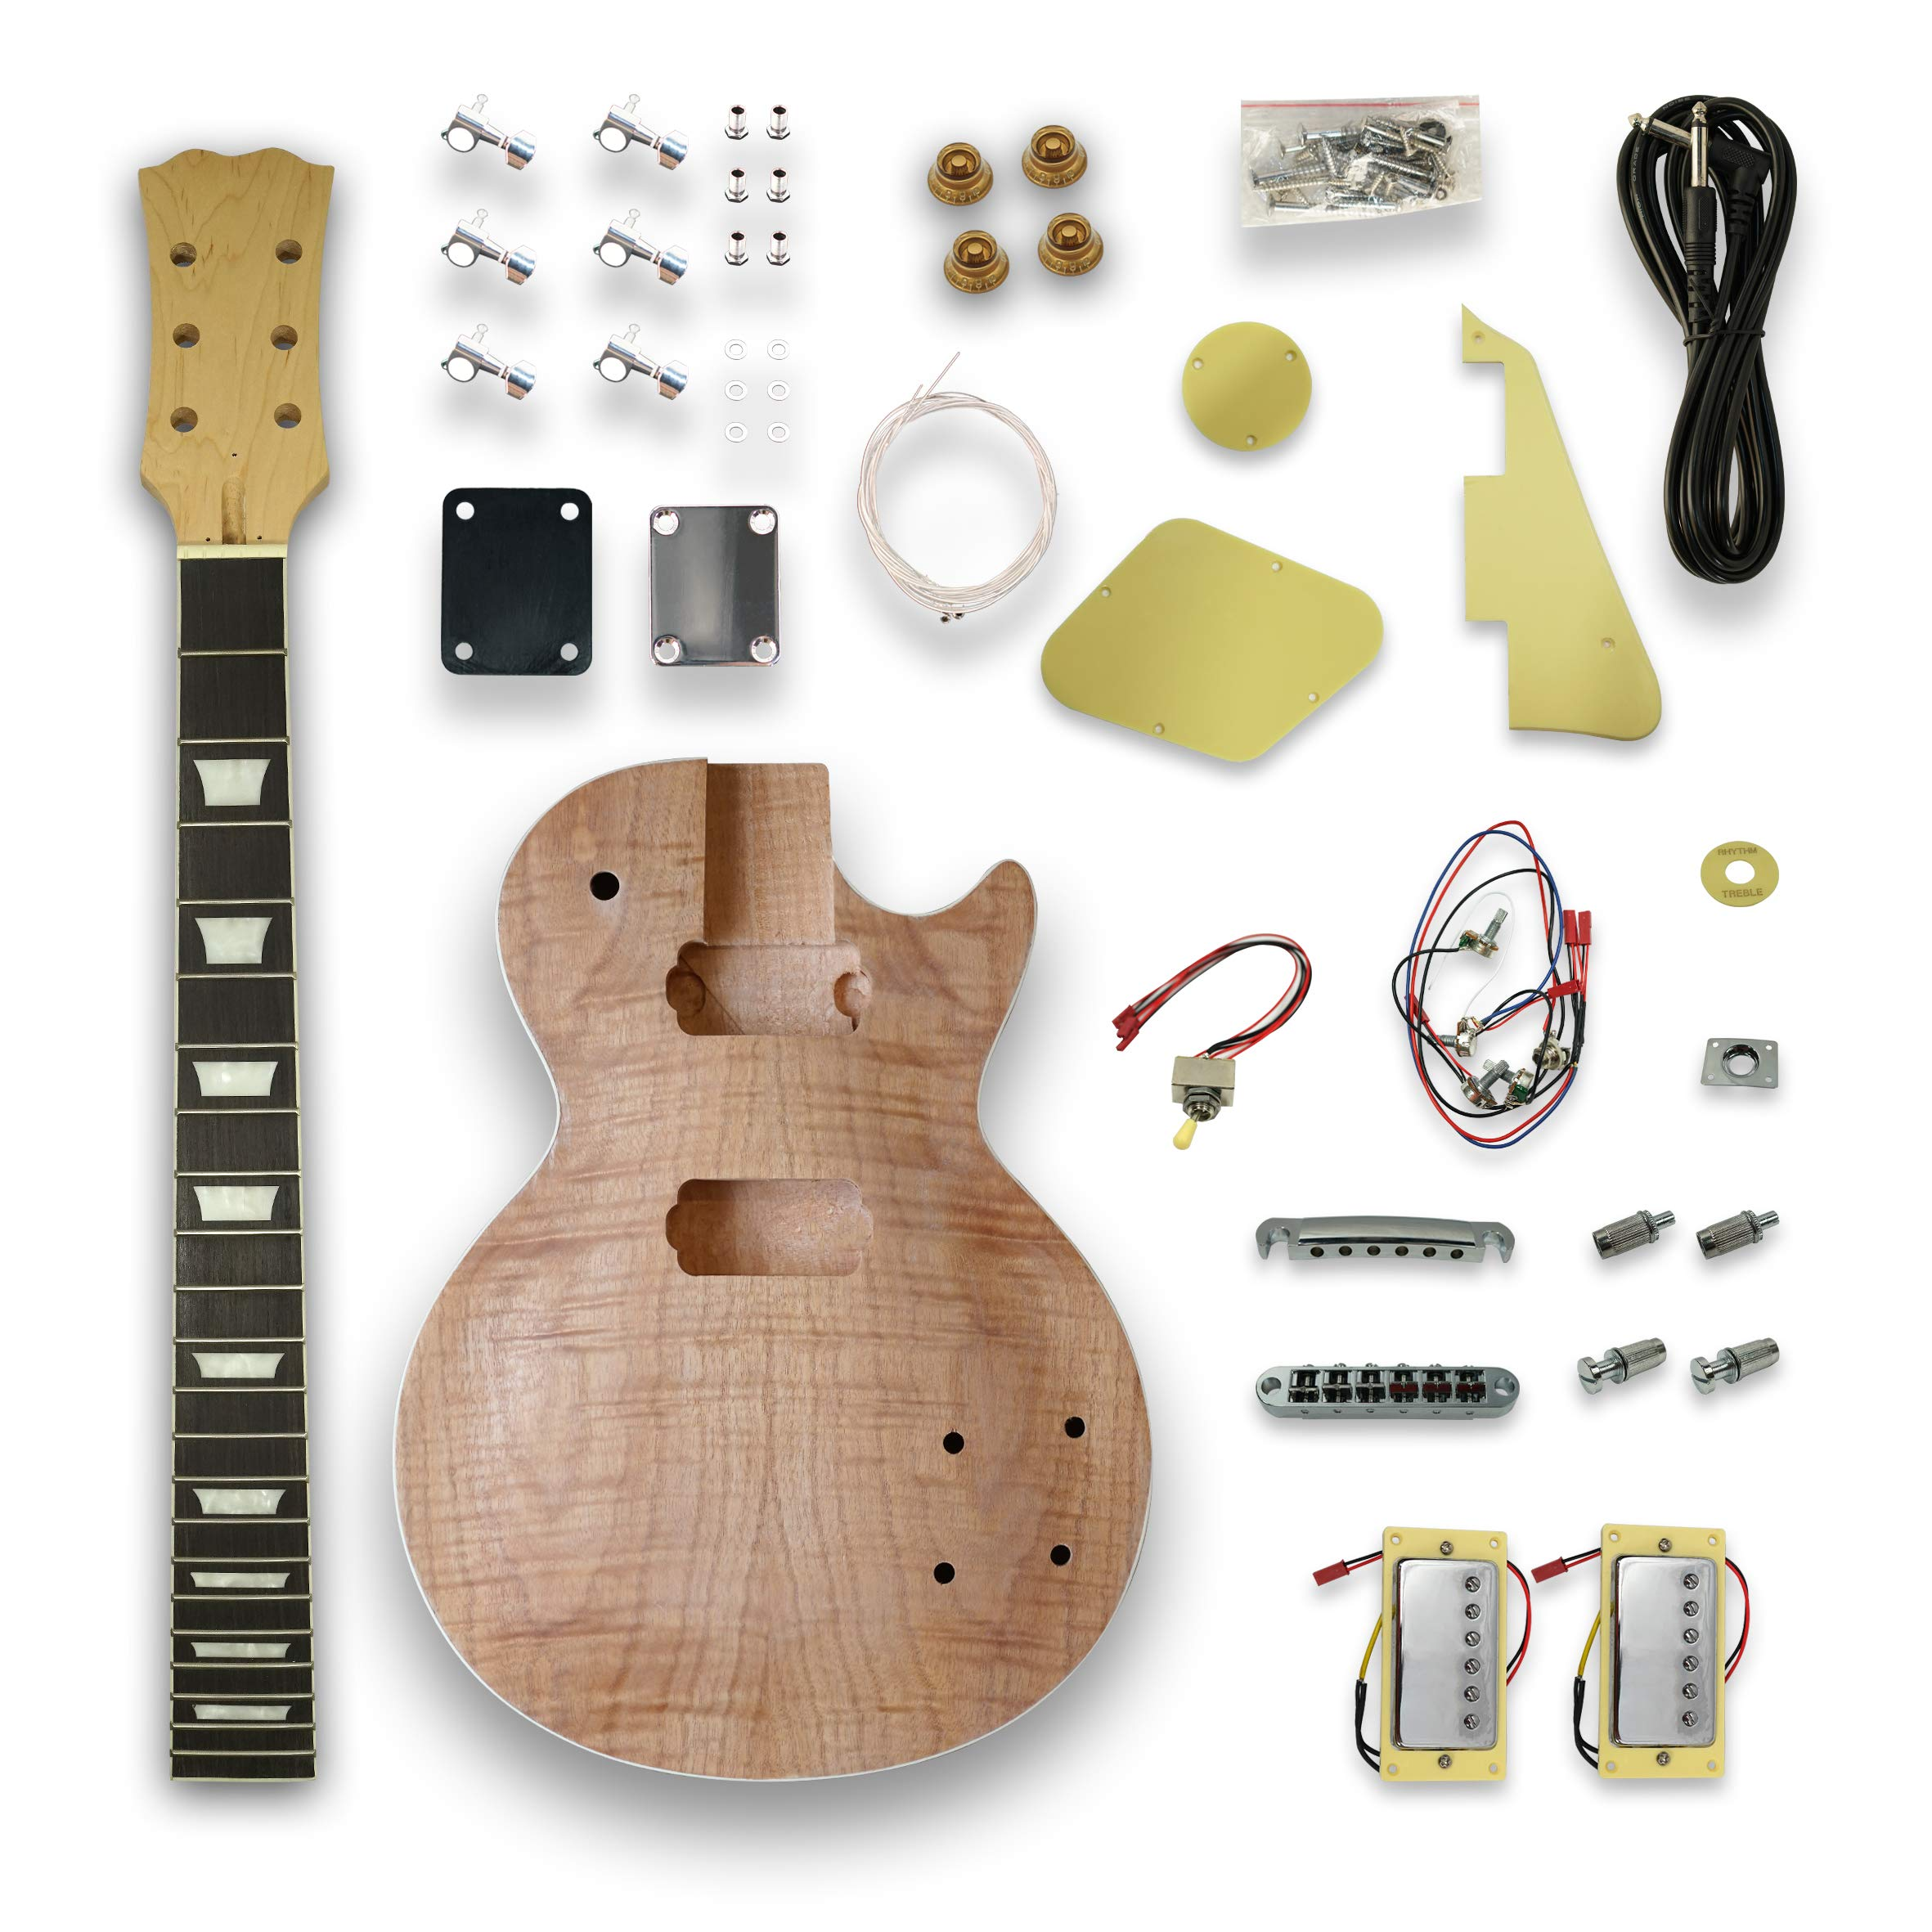 DIY Electric Guitar Kits For LP Guitar, Okoume Body, Maple Neck,Composite Ebony Fretboard by Unknown